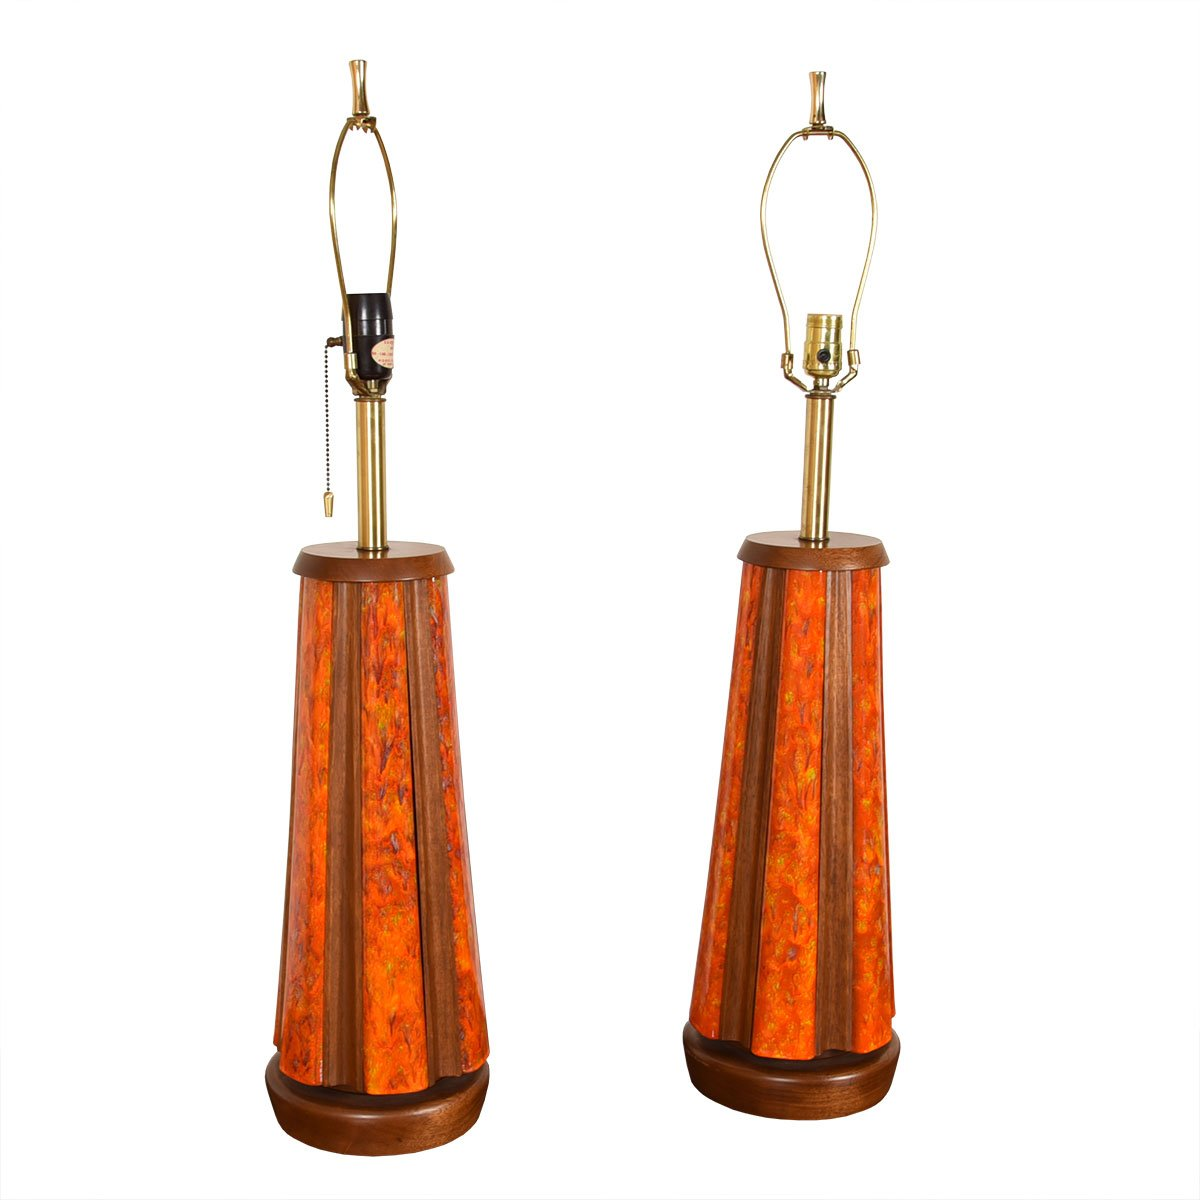 Pair of Stunning Designer Table Lamps in Enamel.